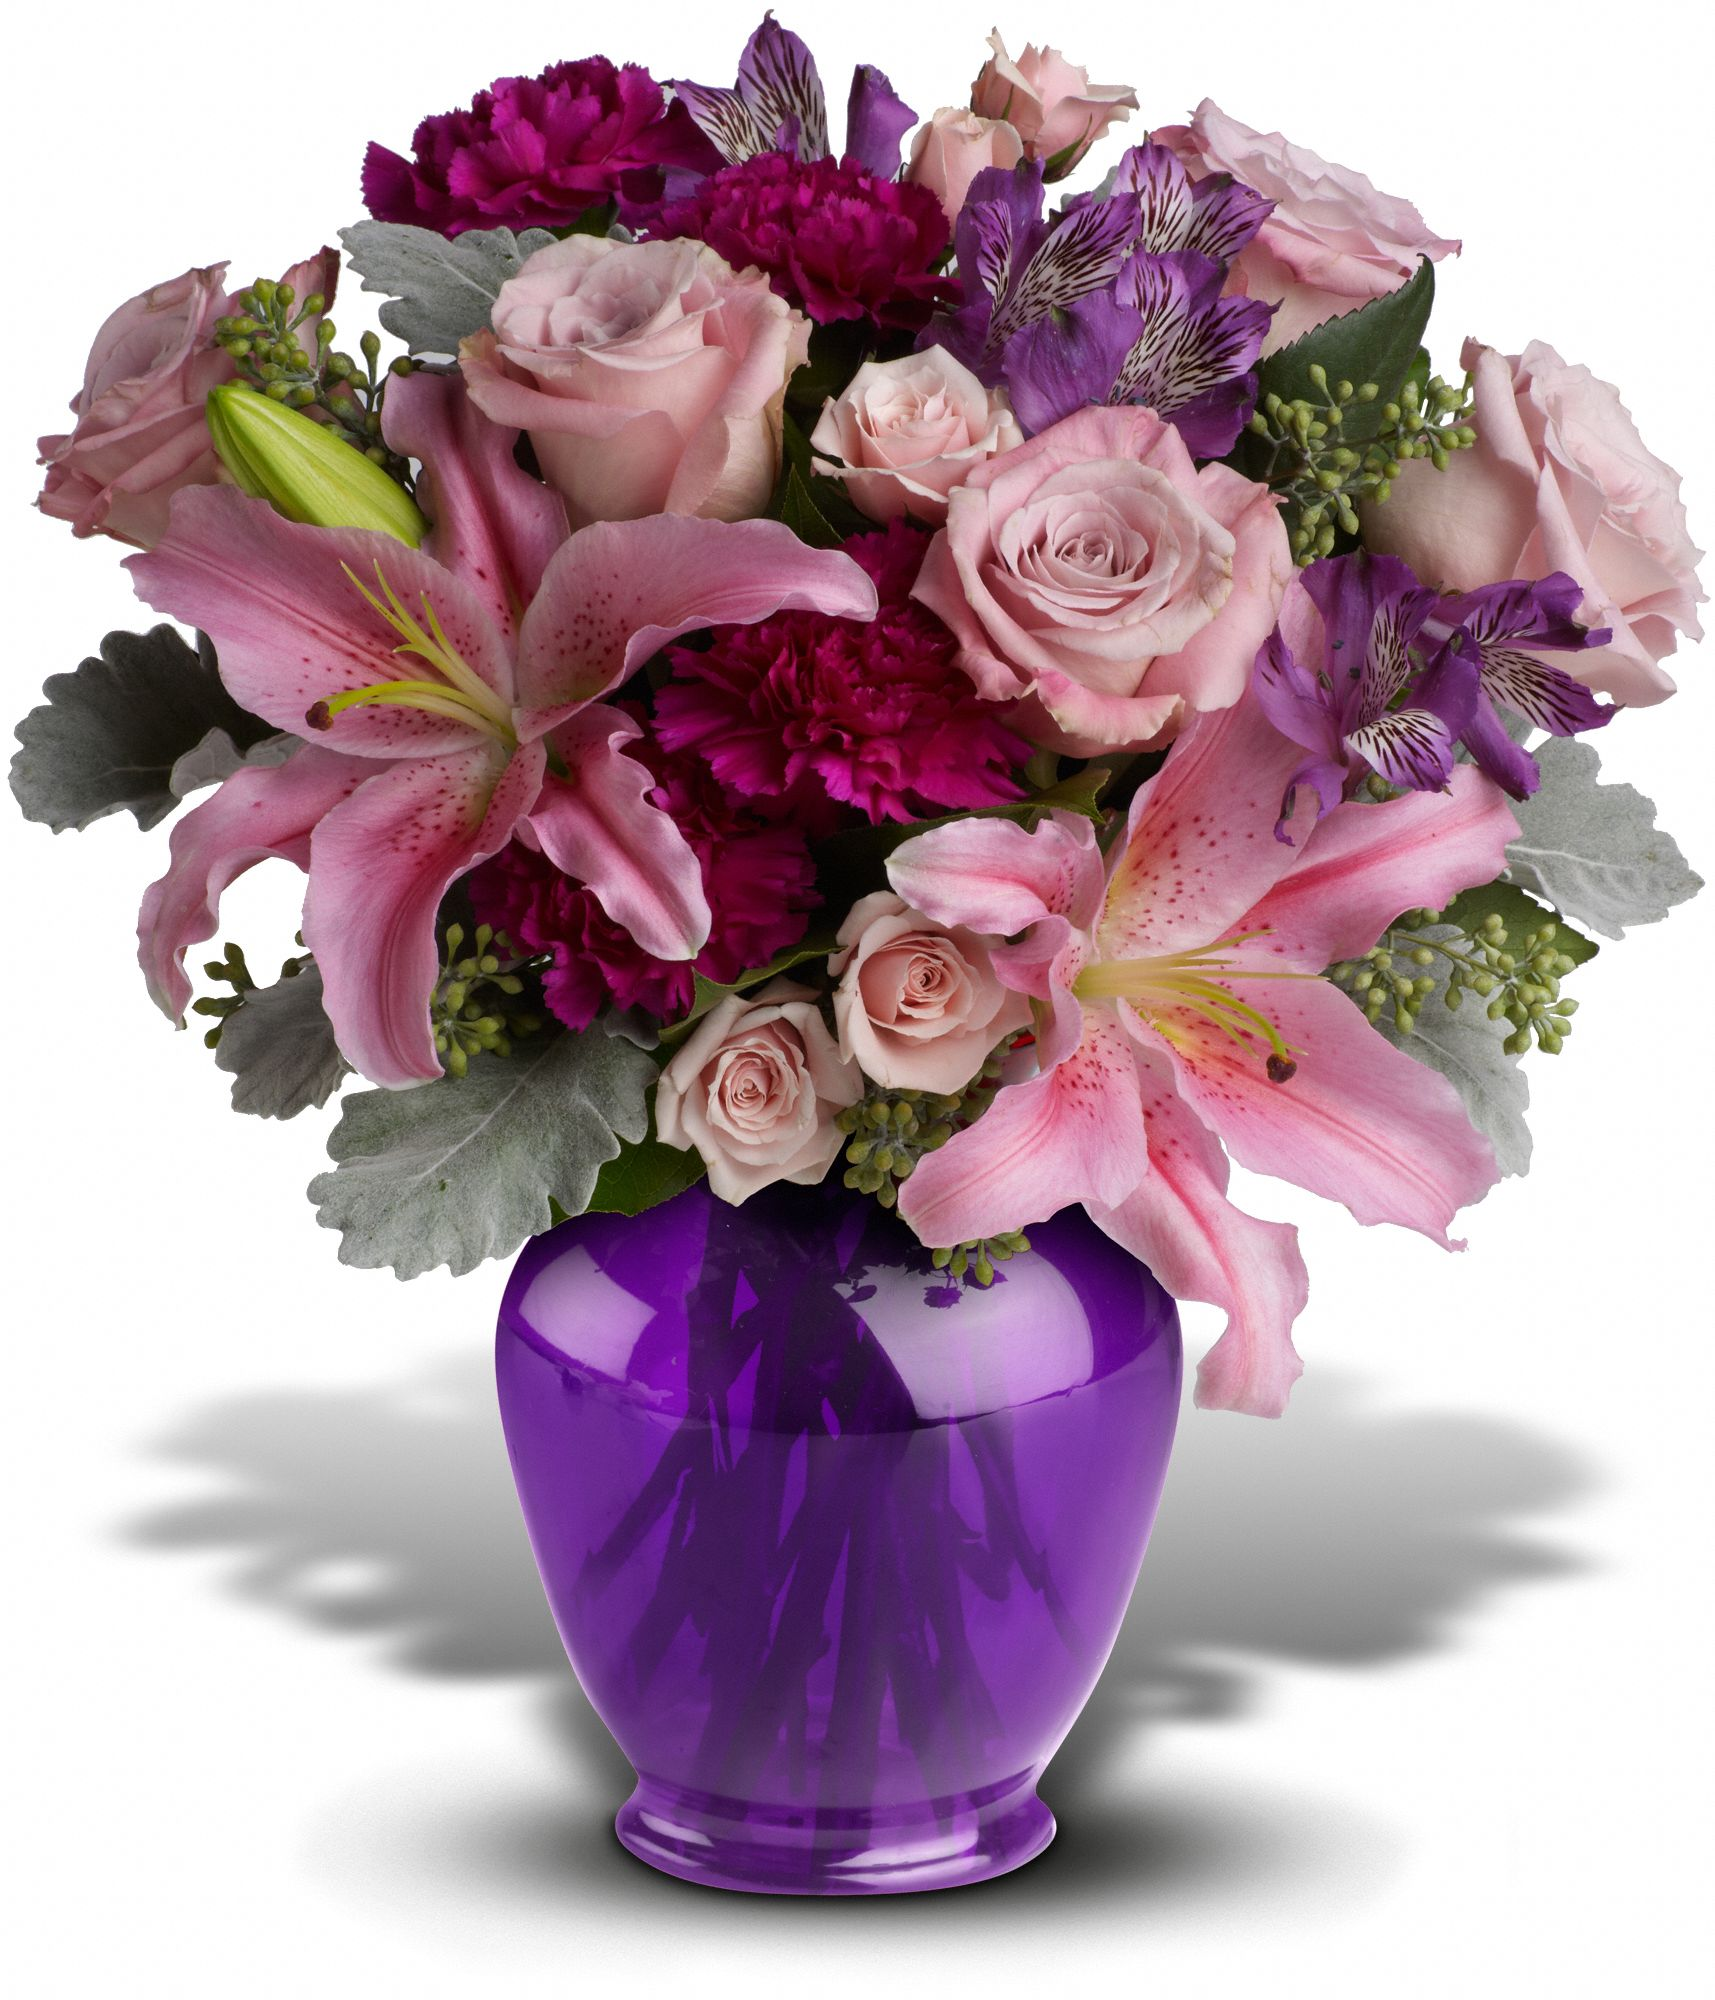 elegant beauty flowers, elegant beauty flower bouquet, Beautiful flower